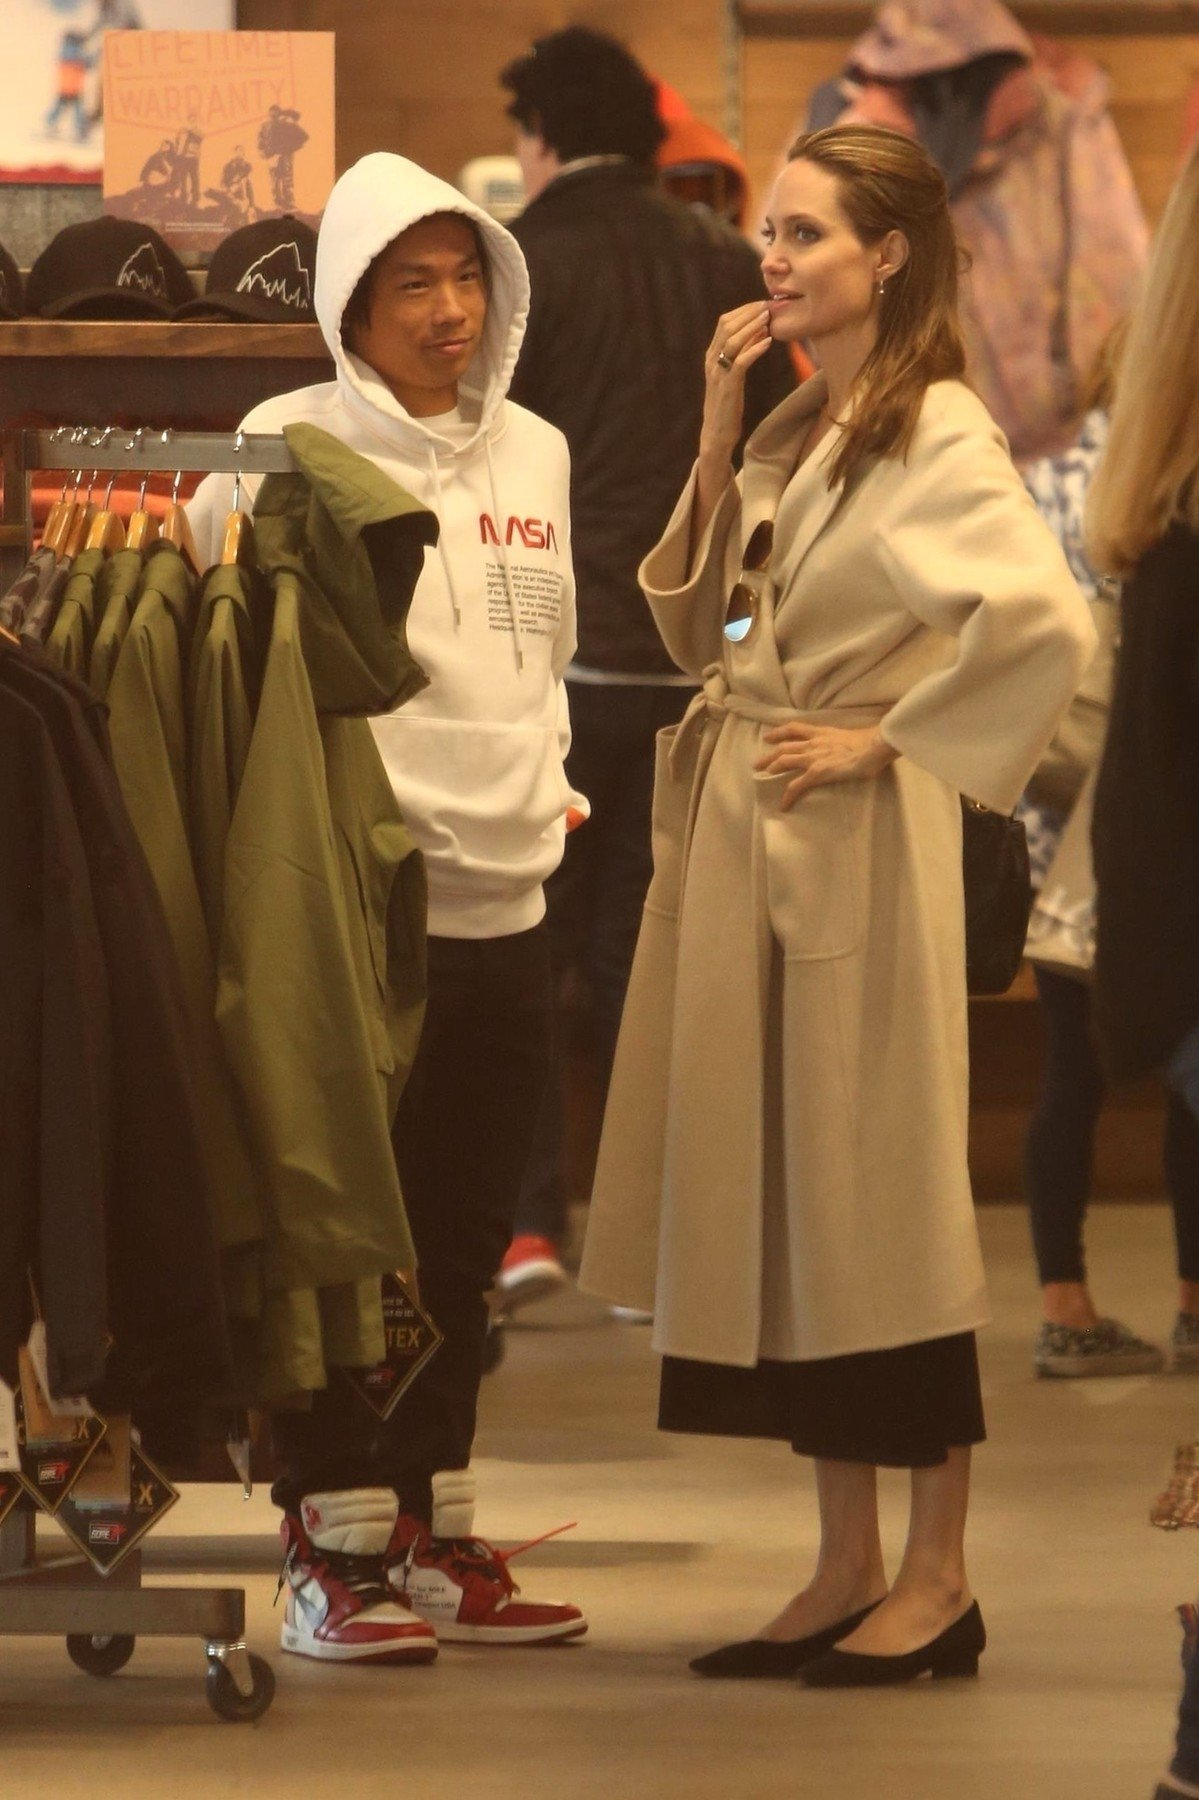 Santa Monica, CA  - *EXCLUSIVE*  - Angelina Jolie spends some quality time with her son Pax in Santa Monica, CA. The duo are seen Christmas shopping and grabbing lunch as they enjoy their Saturday together.  Pictured: Angelina Jolie    *UK Clients - Pictures Containing Children Please Pixelate Face Prior To Publication*, Image: 404040234, License: Rights-managed, Restrictions: , Model Release: no, Credit line: Profimedia, AKM-GSI